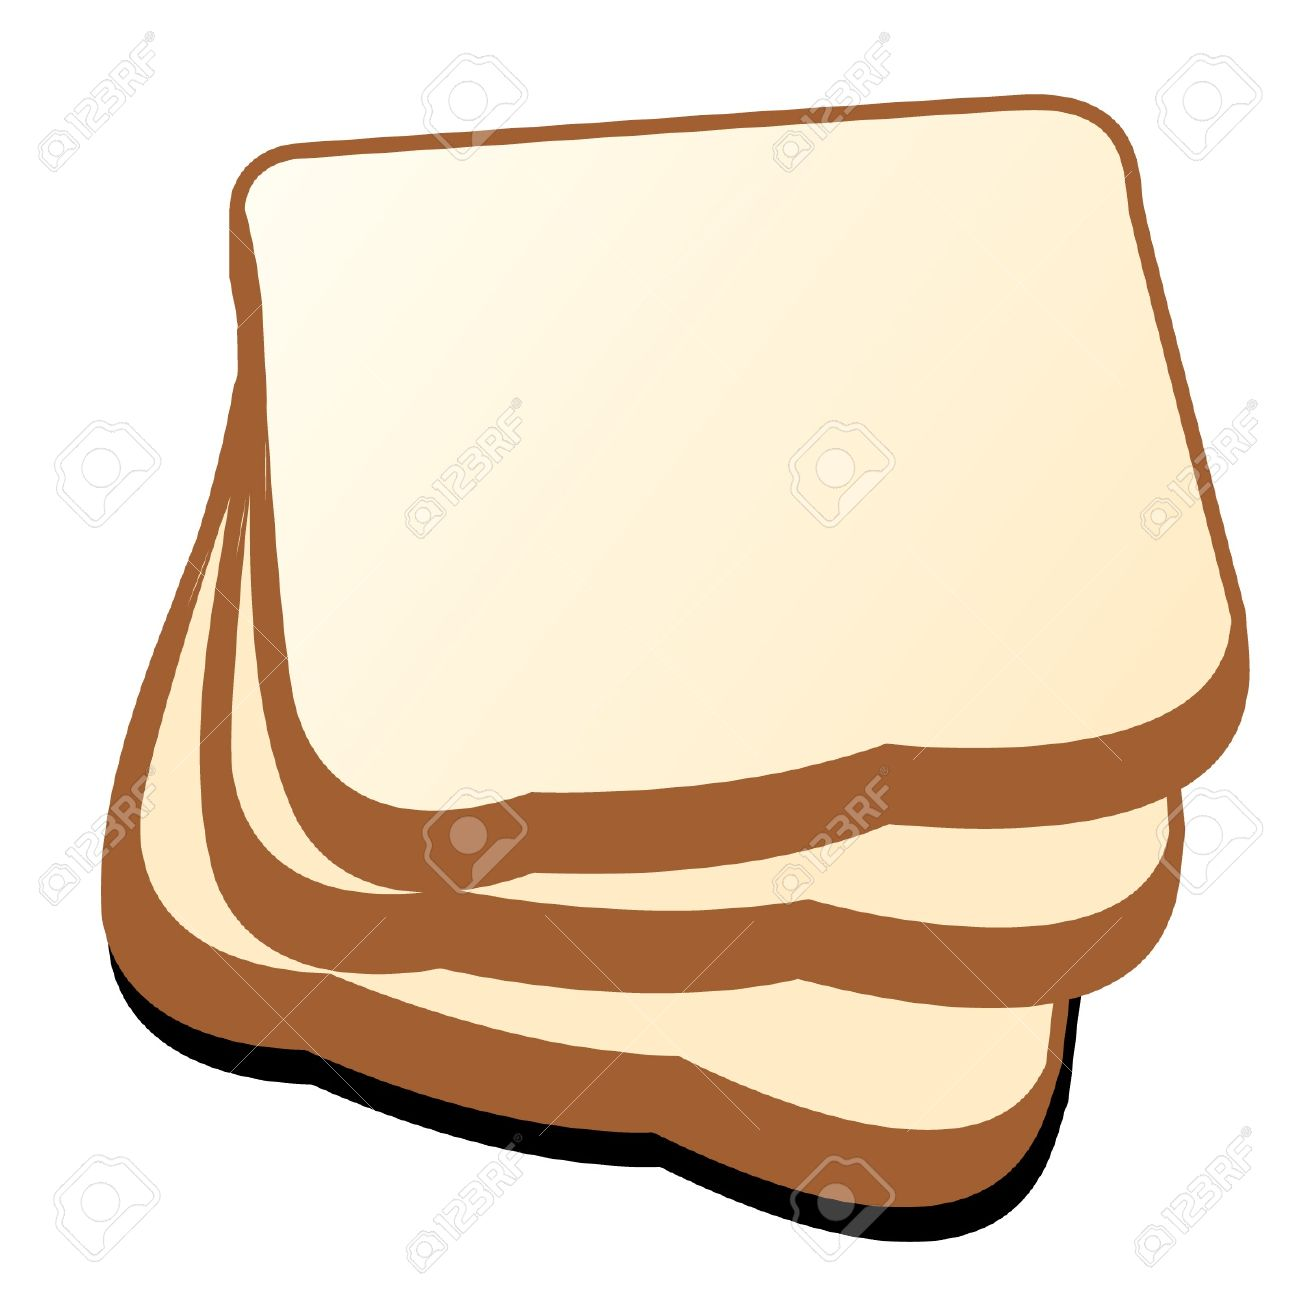 The Cut Loaf Of Bread Vector Royalty Free Cliparts, Vectors, And.